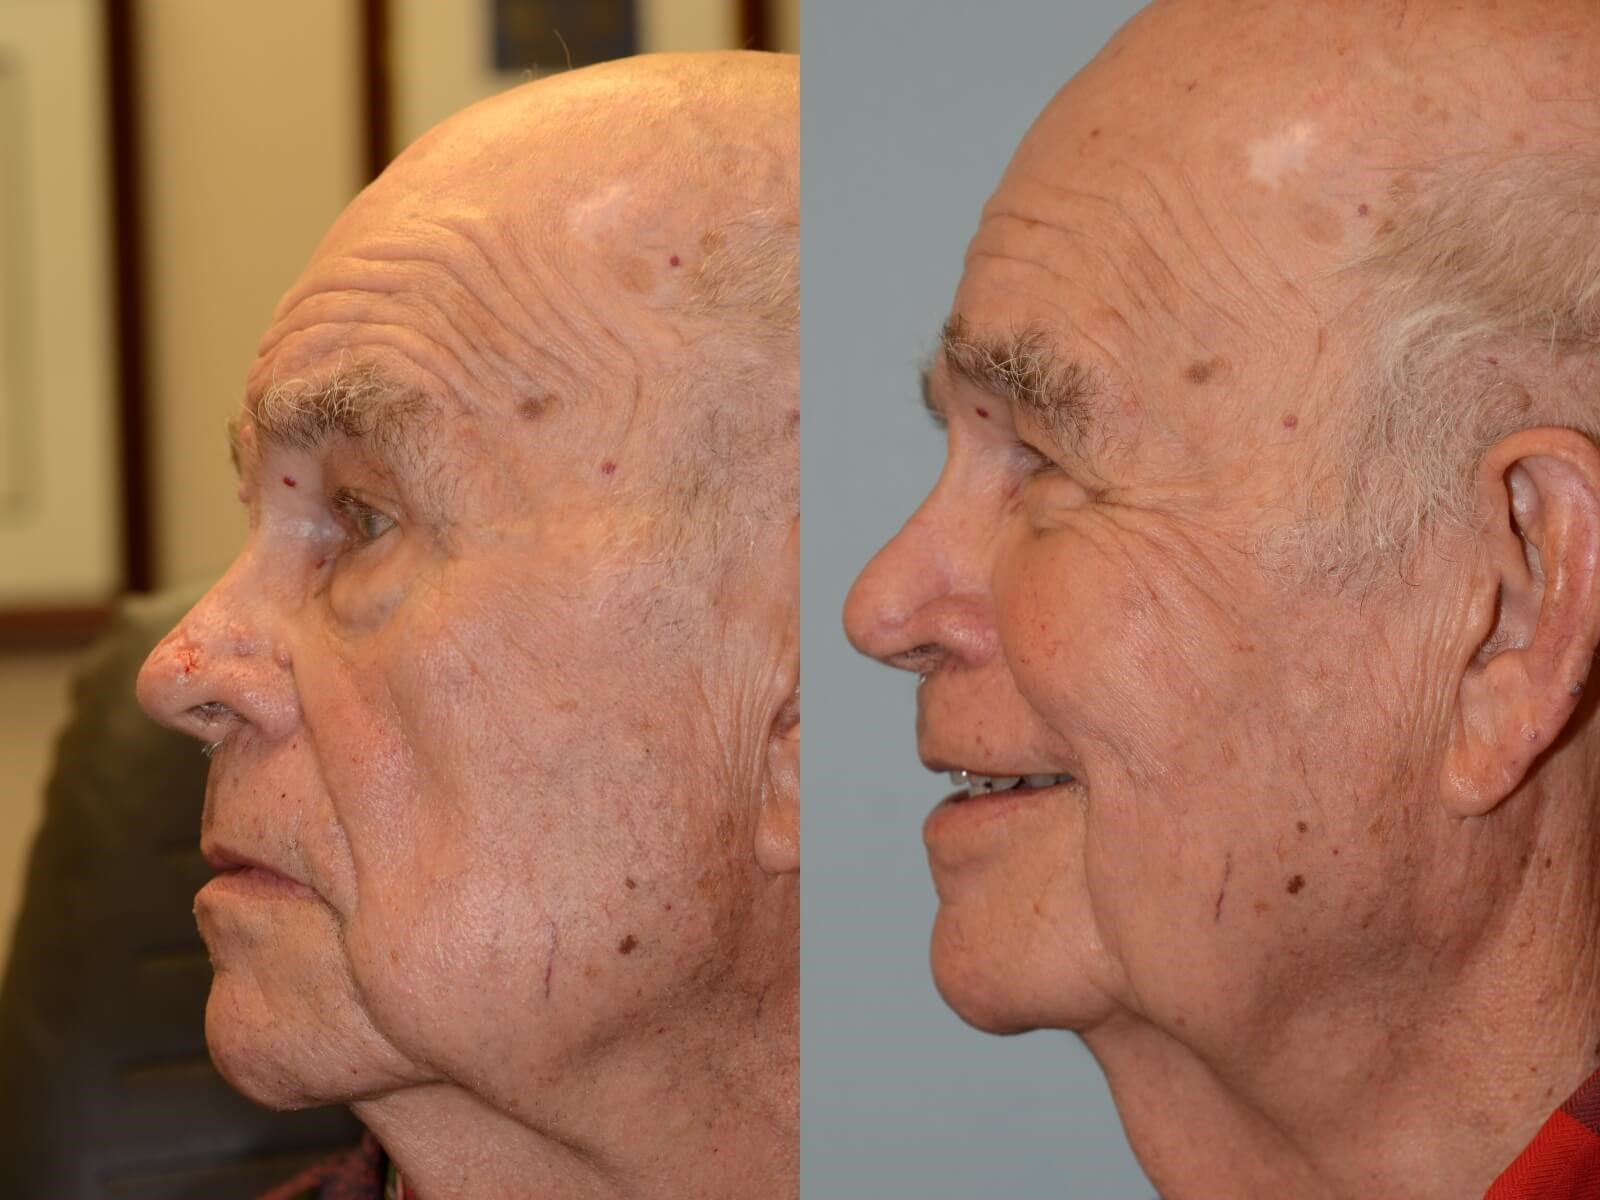 Forehead Flap Reconstruction Before and After